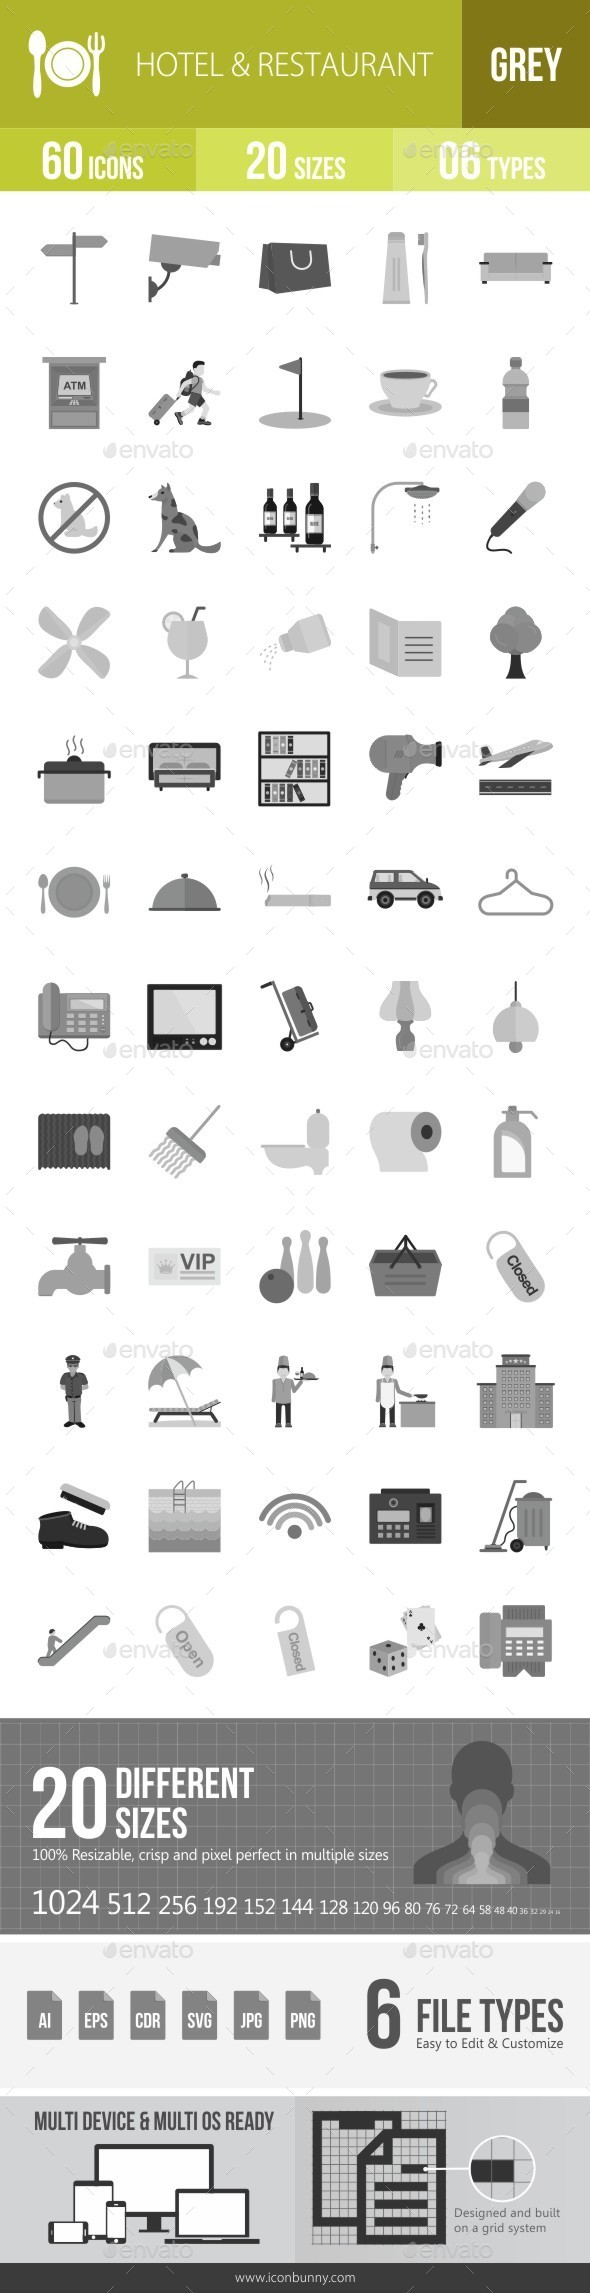 Hotel & Restaurant Greyscale Icons - Icons